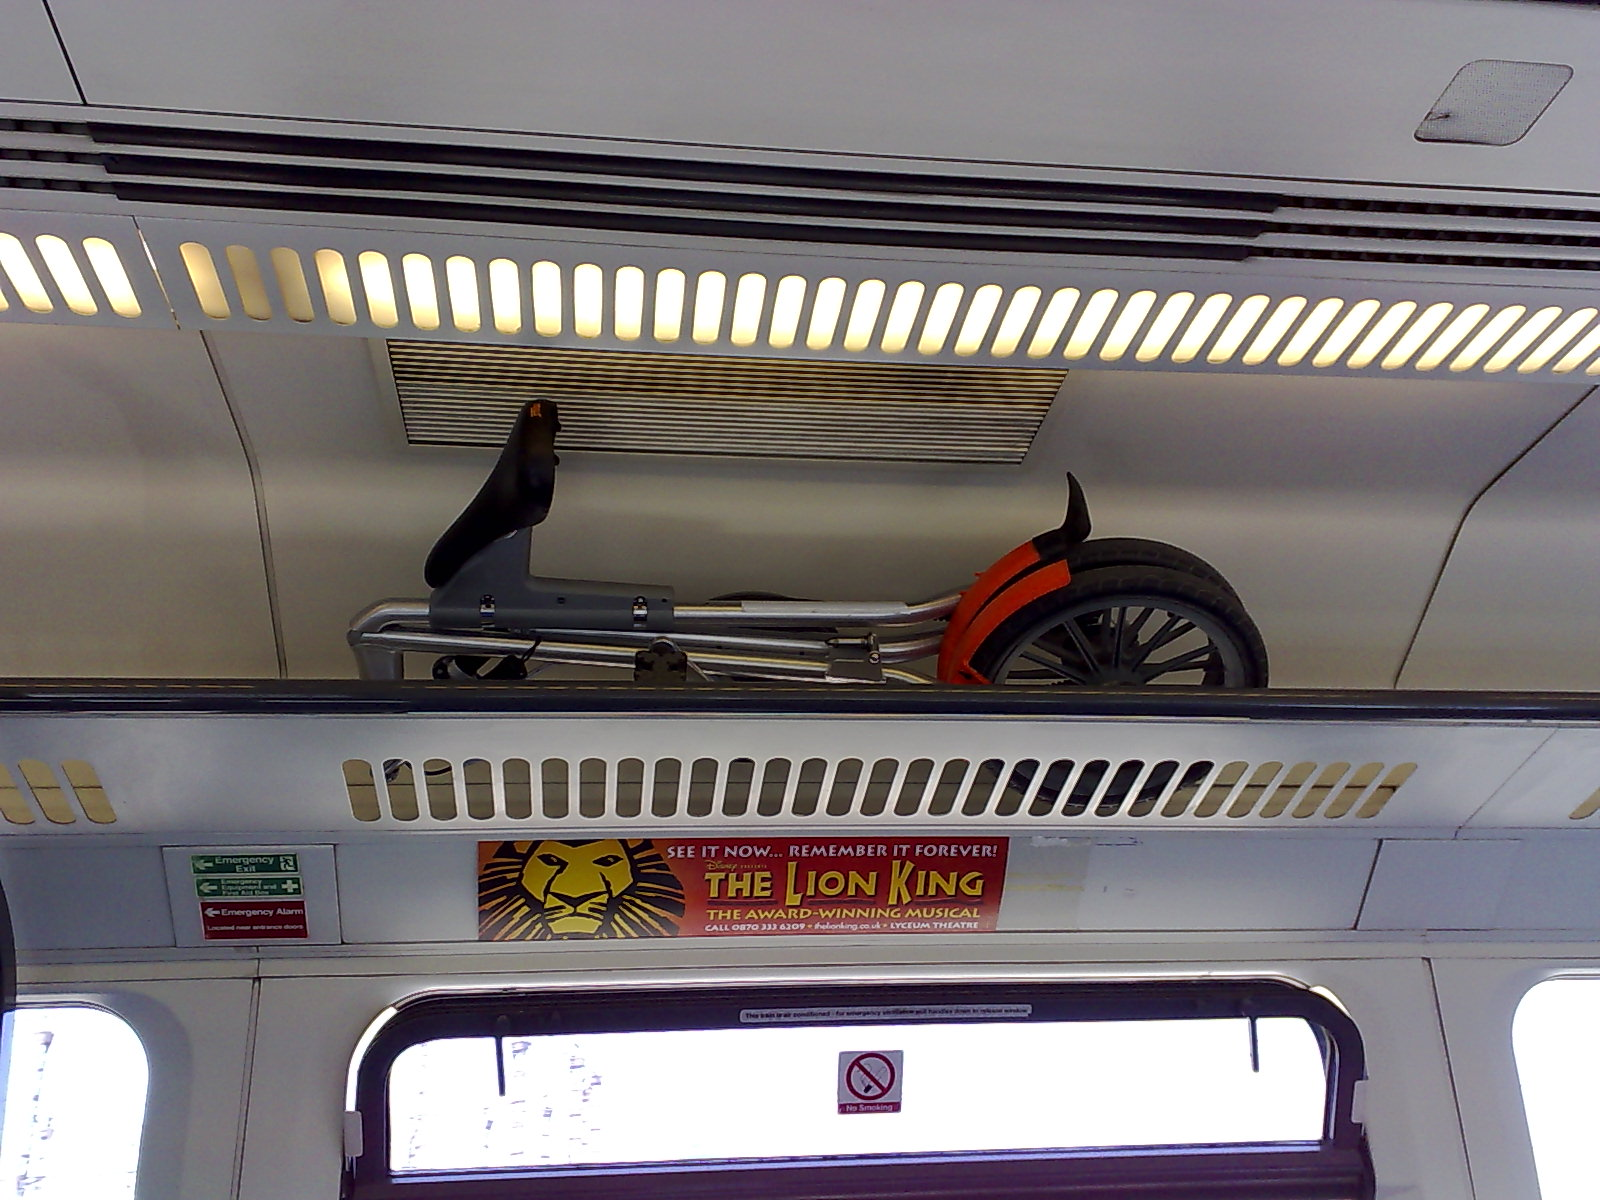 On Train - in overhead luggage space